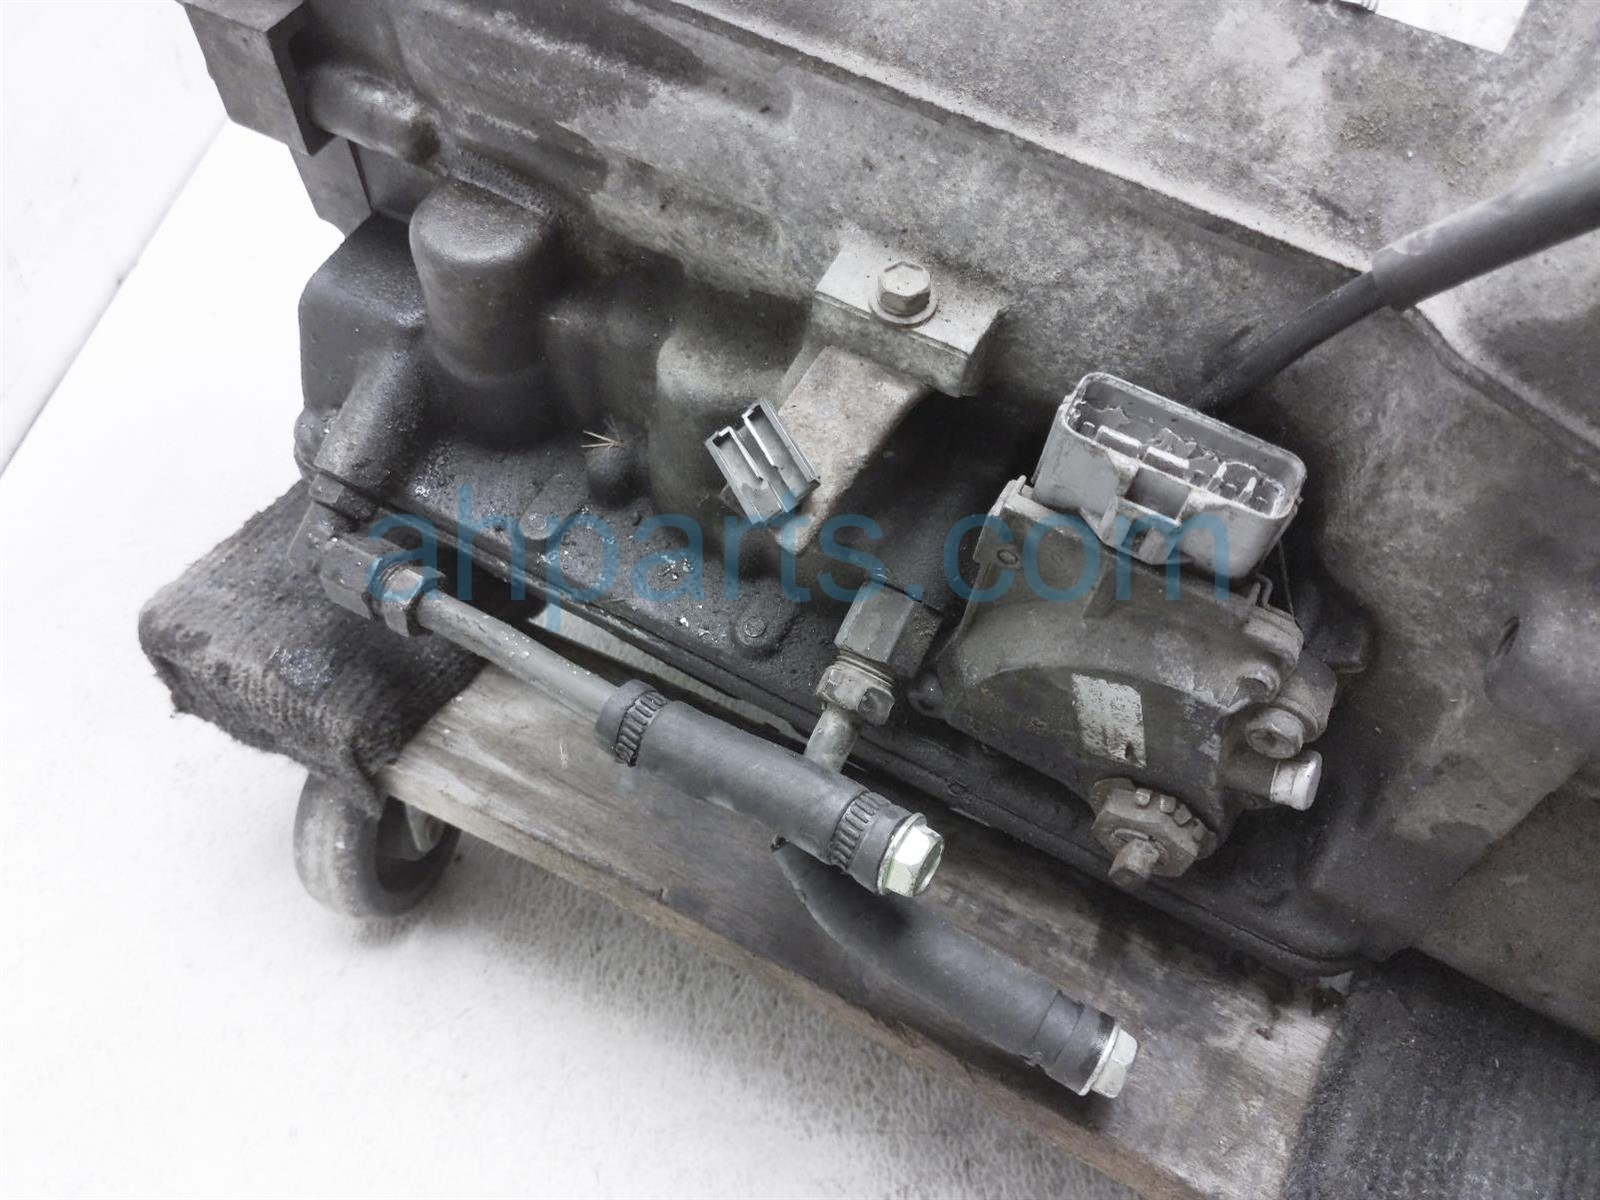 2000 Toyota Tacoma At Transmission = 173k Miles 35010 3D610 84 Replacement